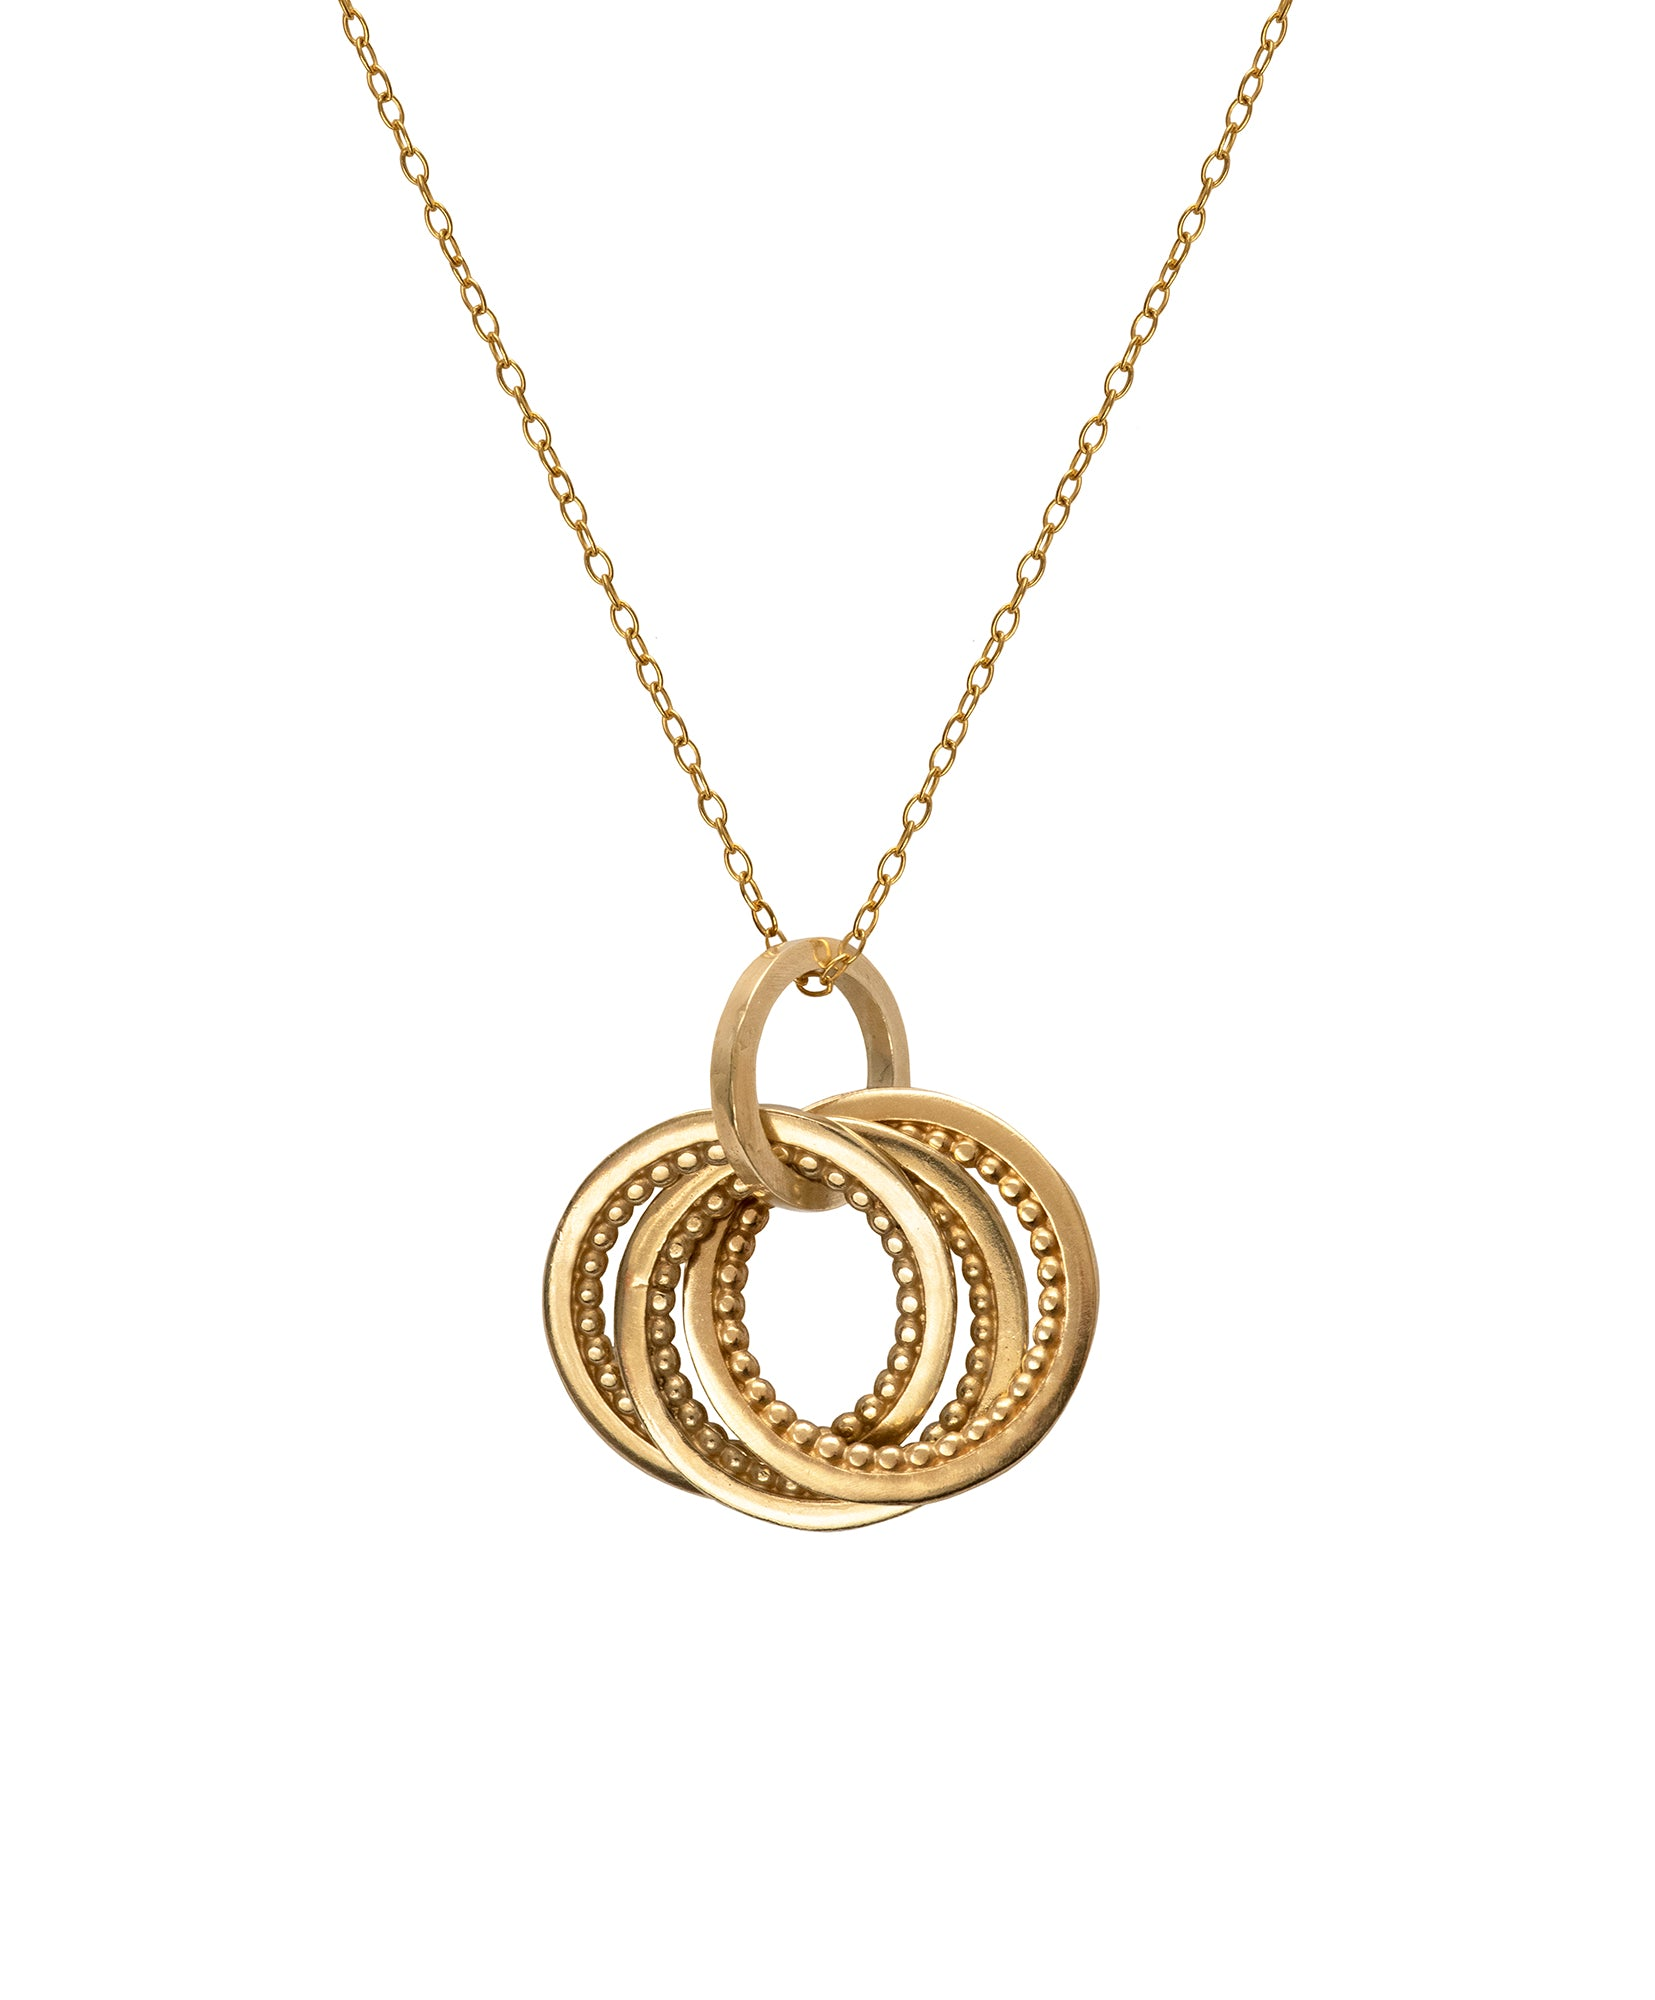 Intertwining Meridian Necklace